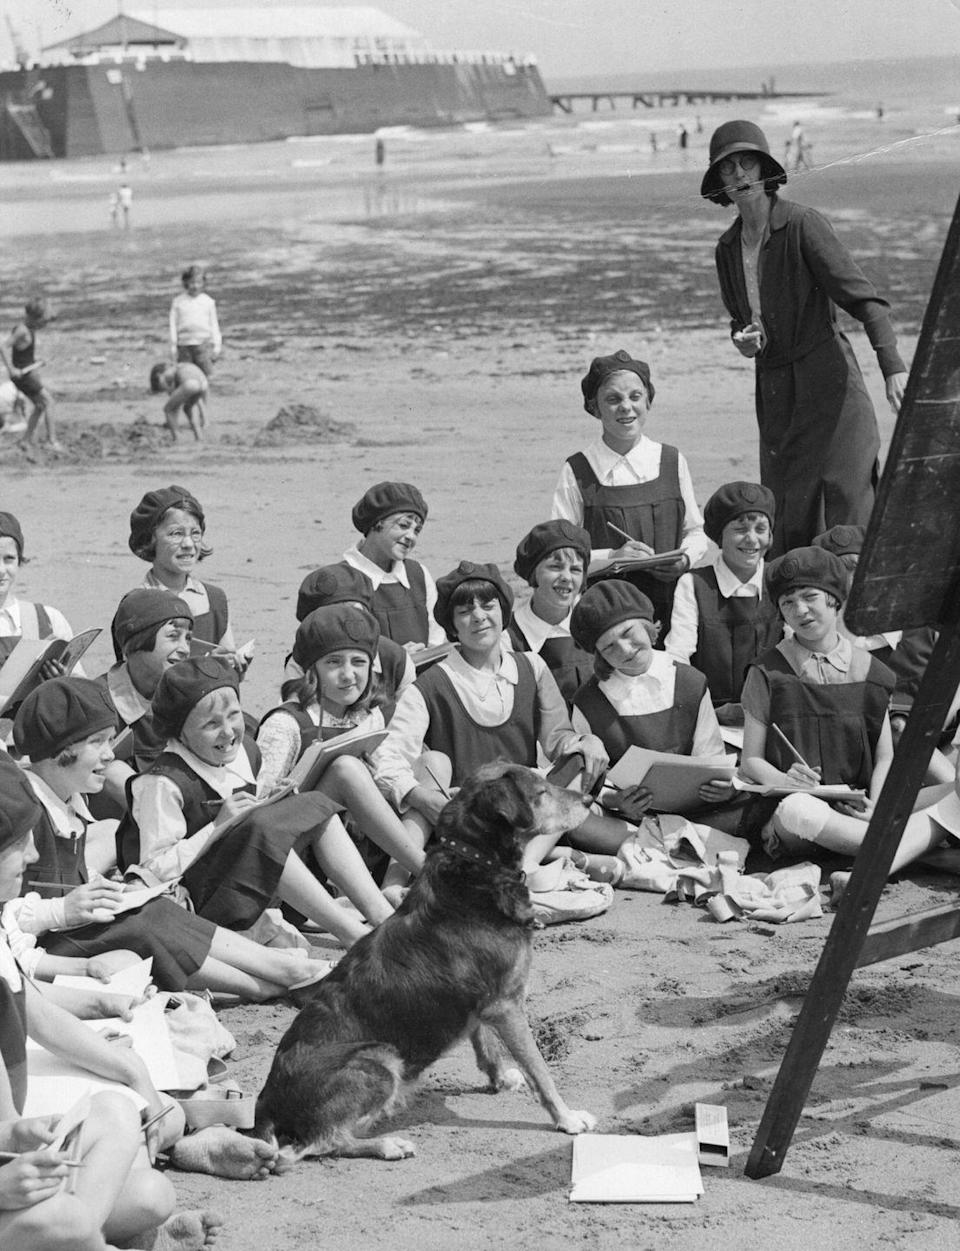 """<p>A group of girls enjoy an outdoor painting class while on a school trip to the beach. </p><p><strong>RELATED: </strong><a href=""""https://www.goodhousekeeping.com/life/parenting/g4491/how-to-get-the-kids-to-school-on-time/"""" rel=""""nofollow noopener"""" target=""""_blank"""" data-ylk=""""slk:17 Tricks to Help You Get the Kids to School on Time"""" class=""""link rapid-noclick-resp"""">17 Tricks to Help You Get the Kids to School on Time</a></p>"""